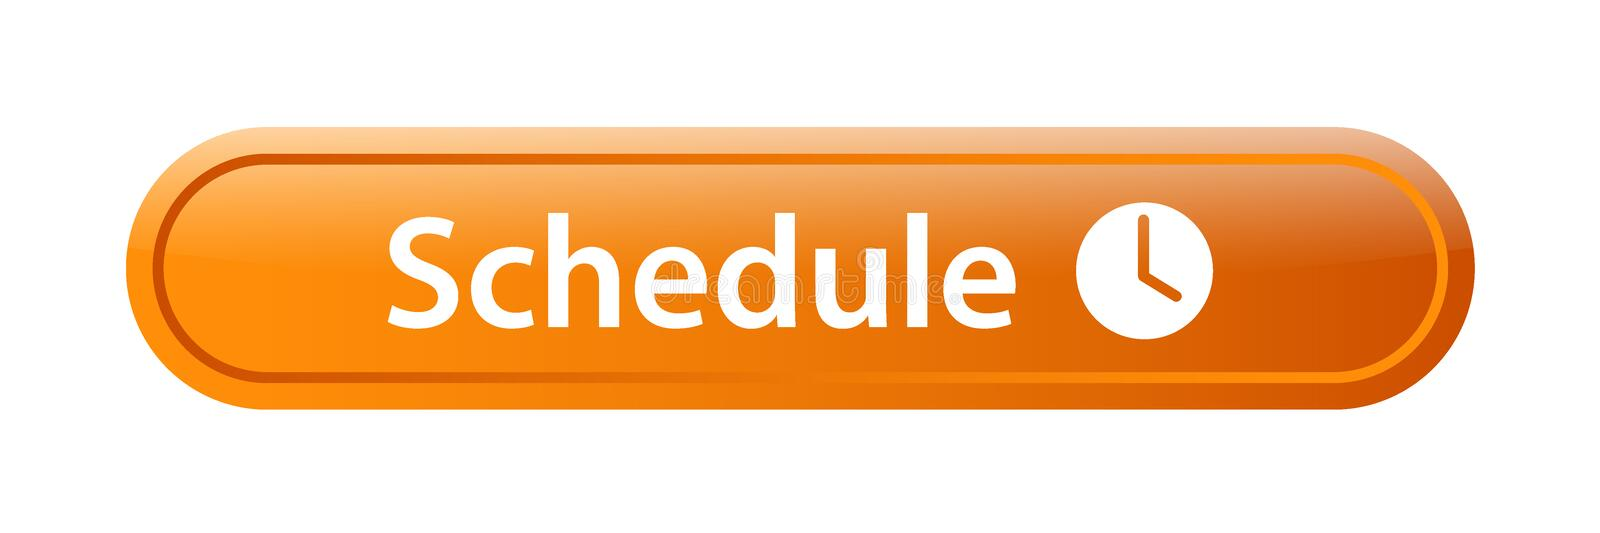 Schedule icon web button. Icon of vector illustration on isolated white background royalty free illustration